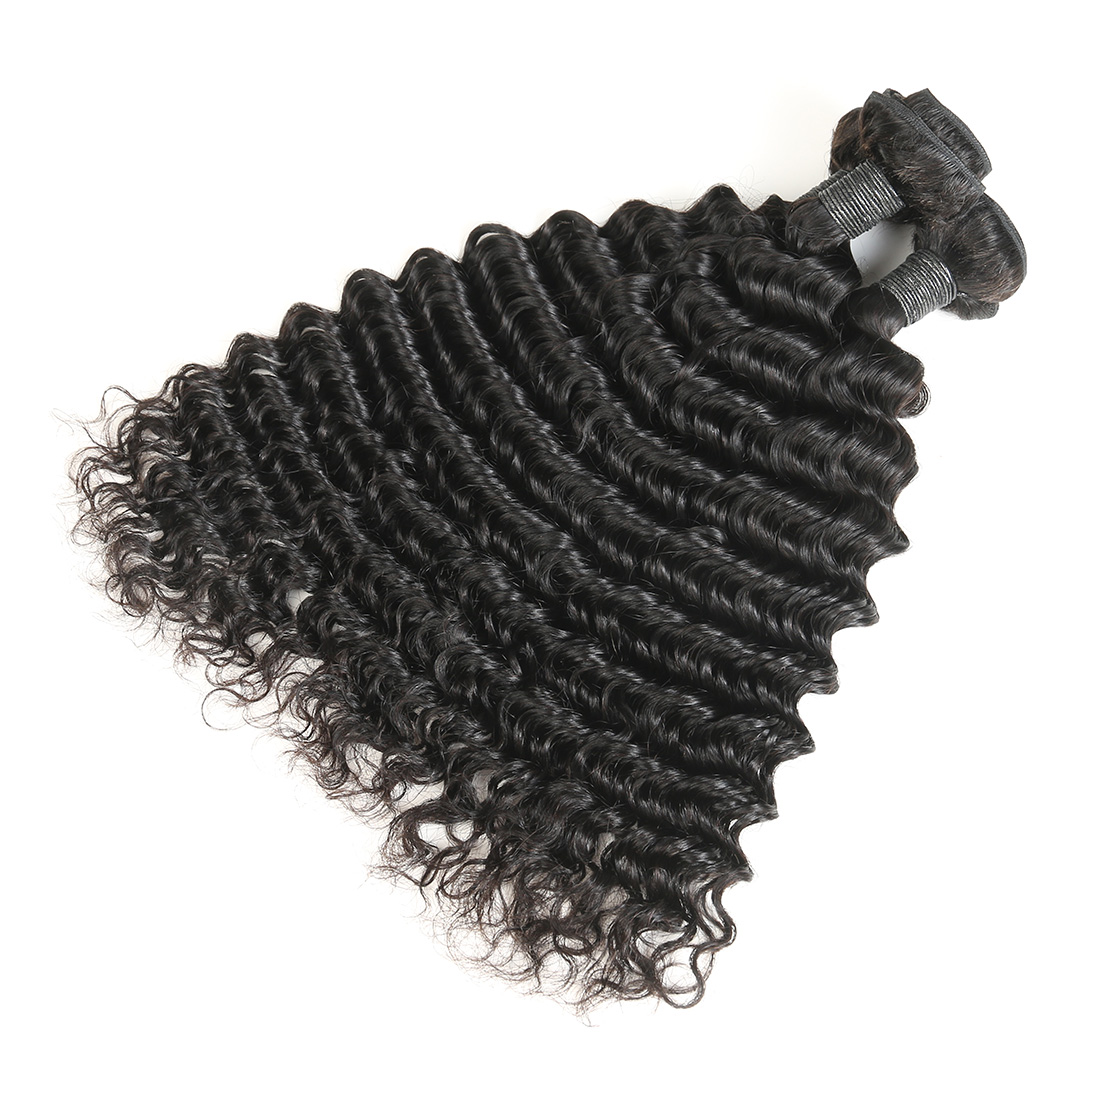 9A Malaysian Deep Wave Human Virgin Hair Weave 3 Bundles With Lace Closure